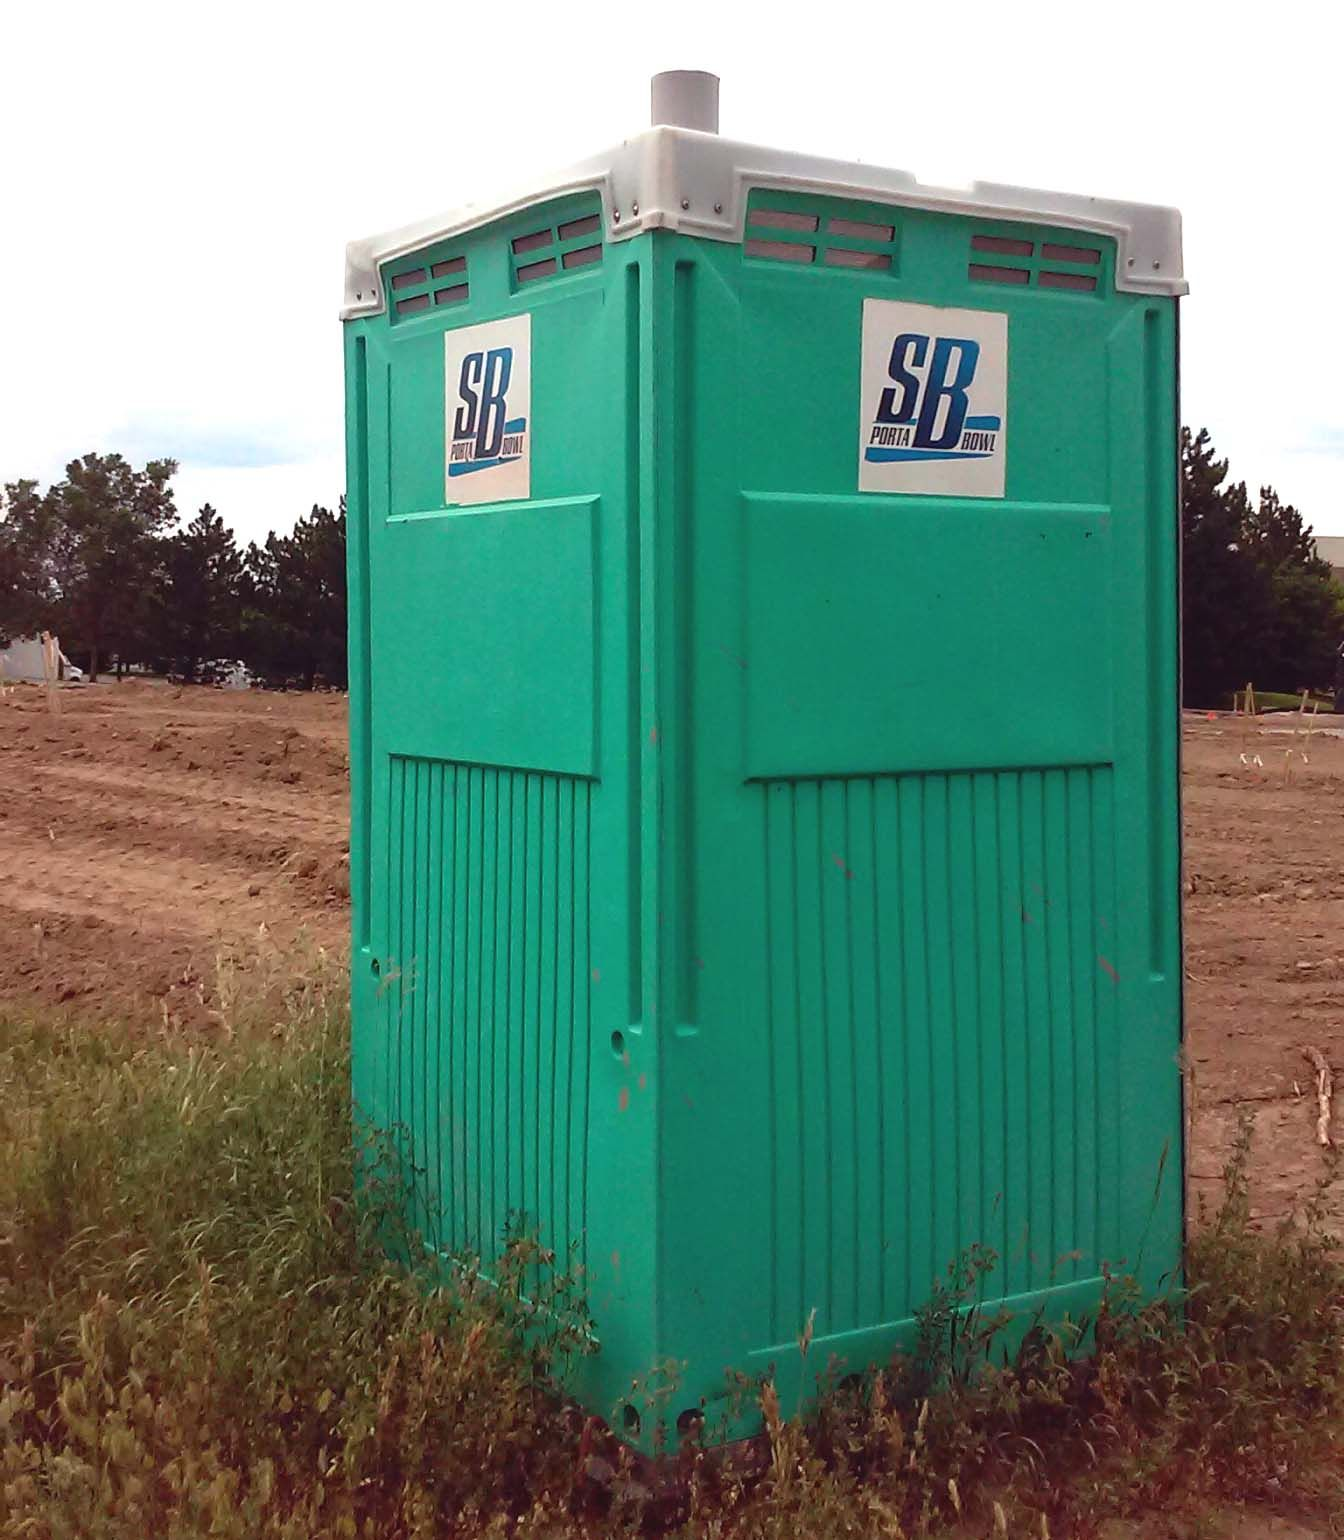 Porta Potty Rental Denver   Perfect For Construction Sites And Outdoor  Events Where Portable Toilets Are